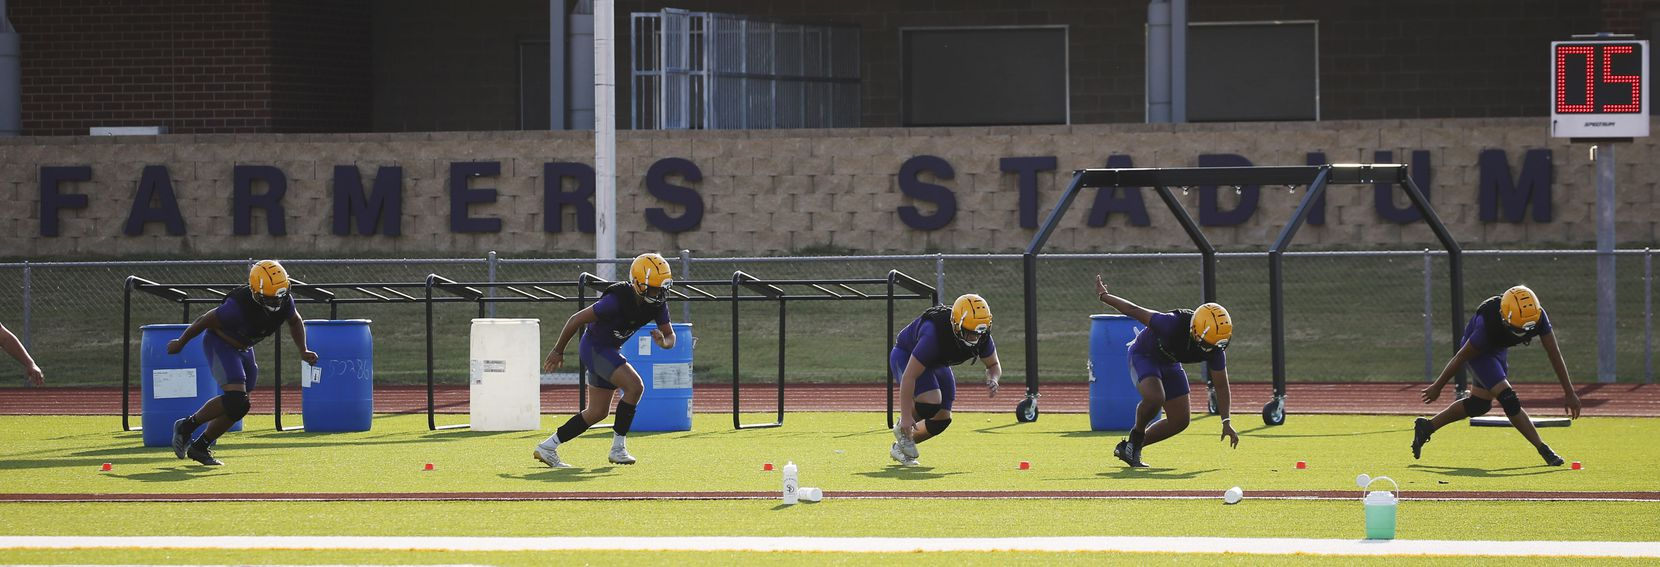 Players run through a drill during the first day of high school football practice for 4A's Farmersville High School in Farmersville, Texas on Monday, August 3, 2020. (Vernon Bryant/The Dallas Morning News)